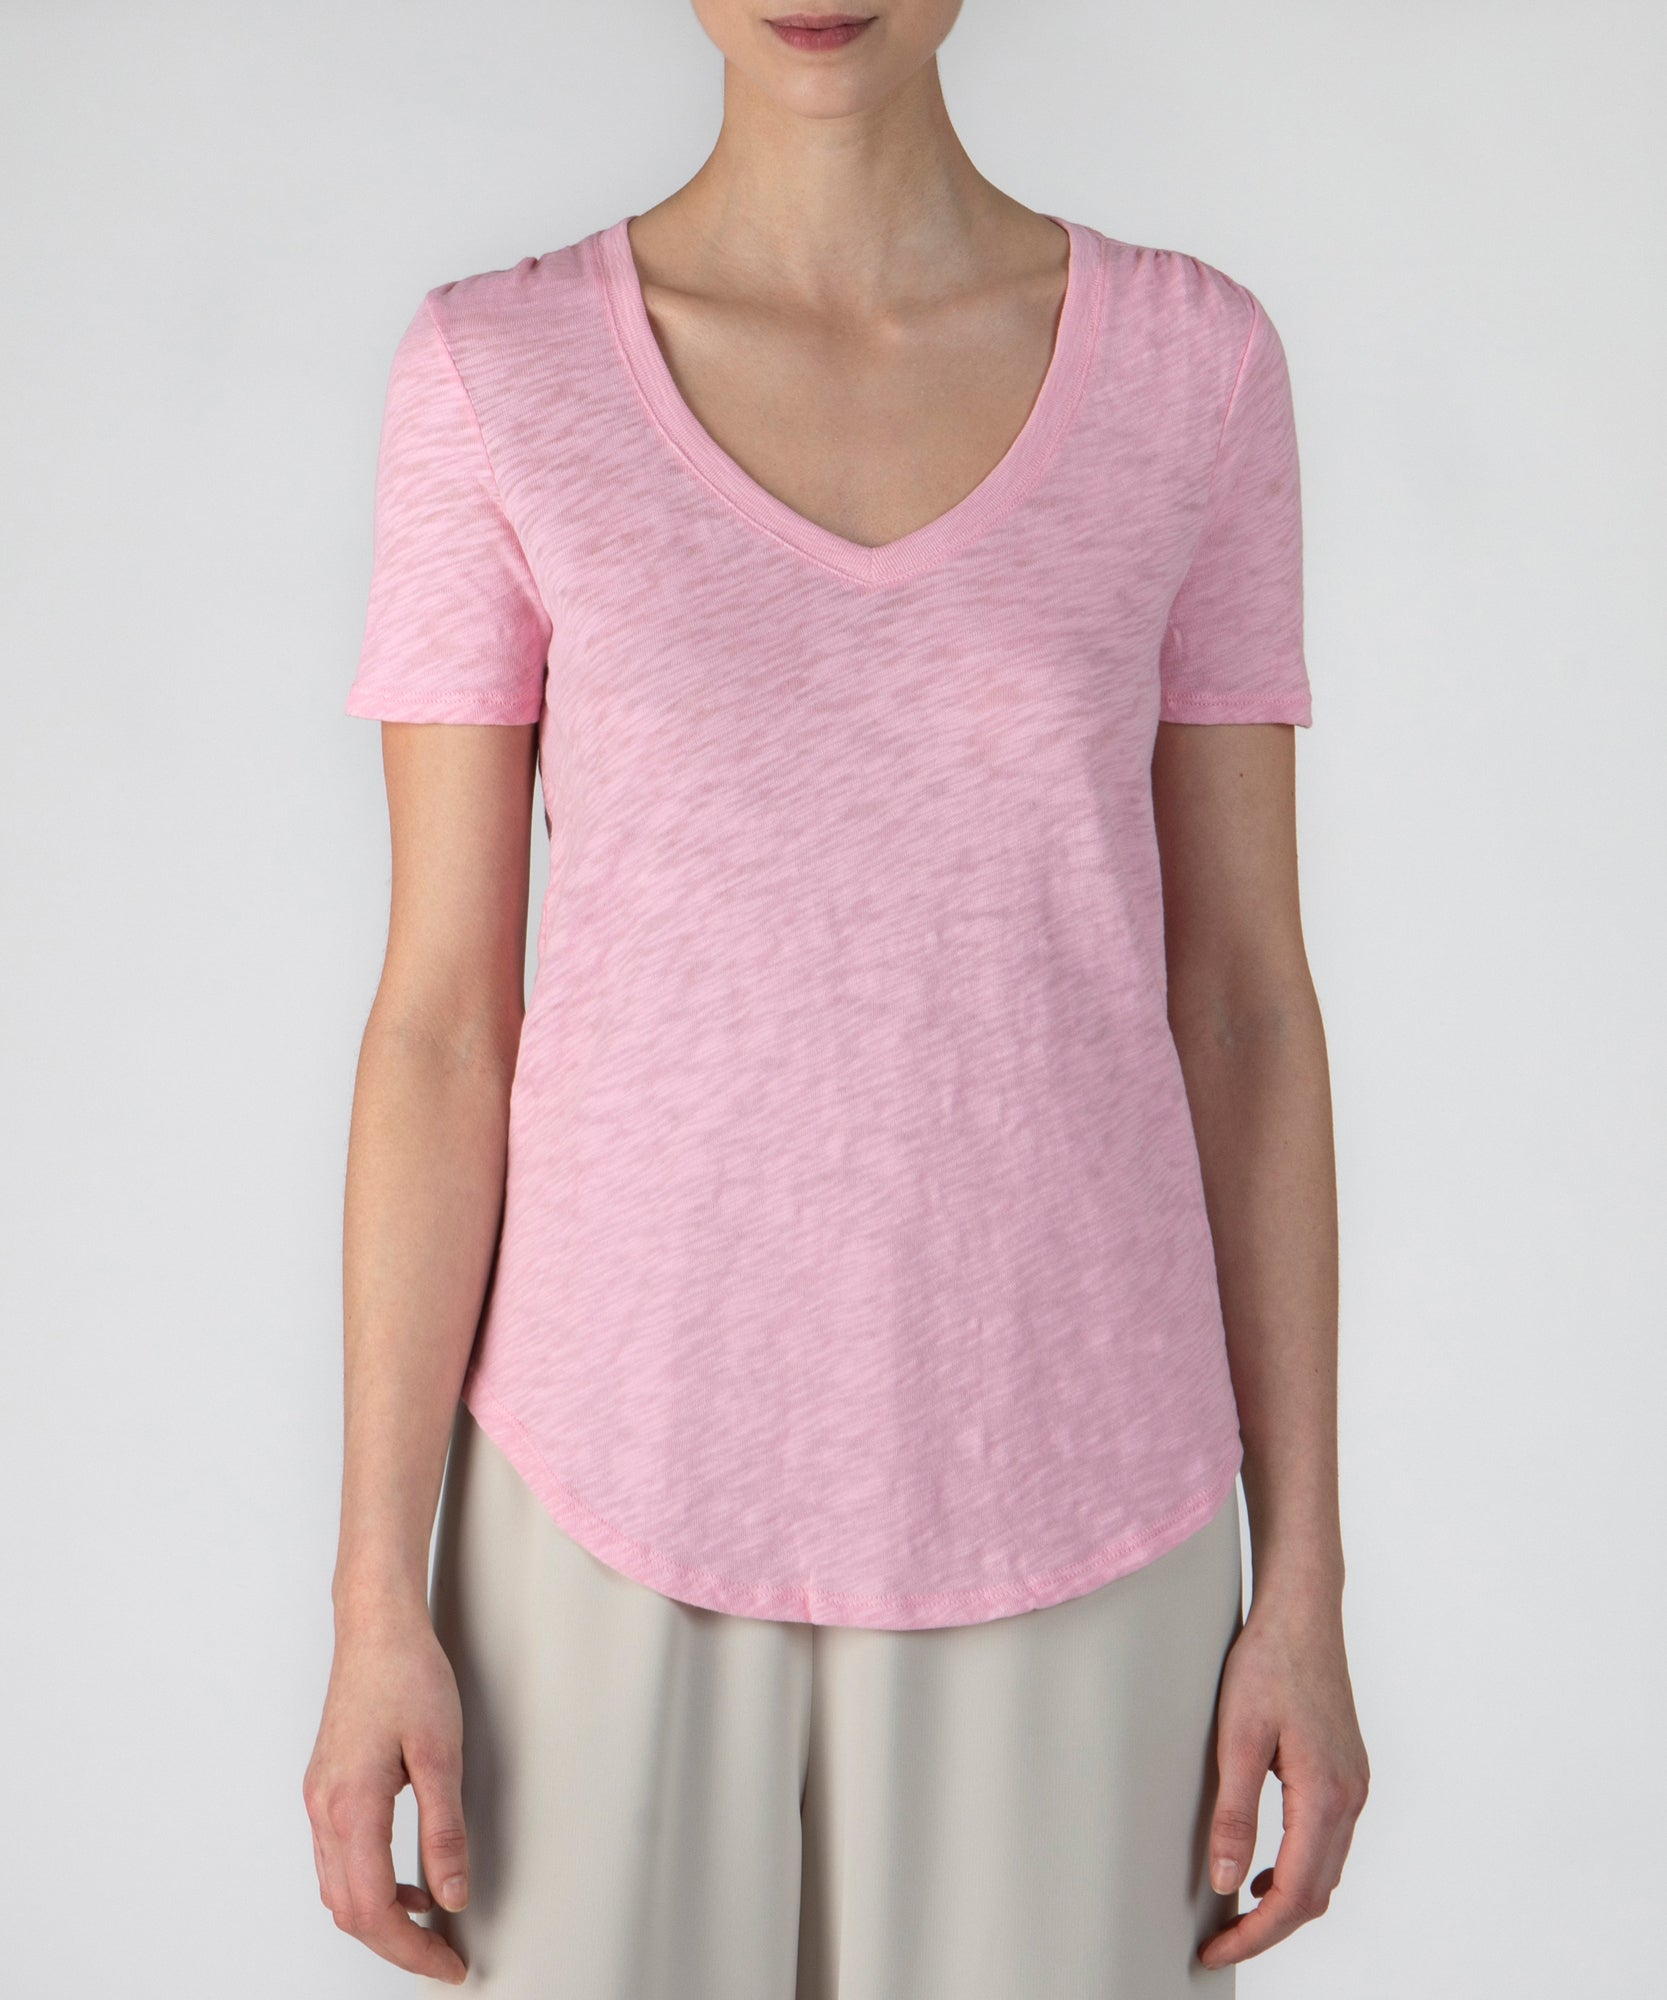 Ballet Pink Slub Jersey Classic V-Neck Tee - Women's Cotton Short Sleeve Tee by ATM Anthony Thomas Melillo